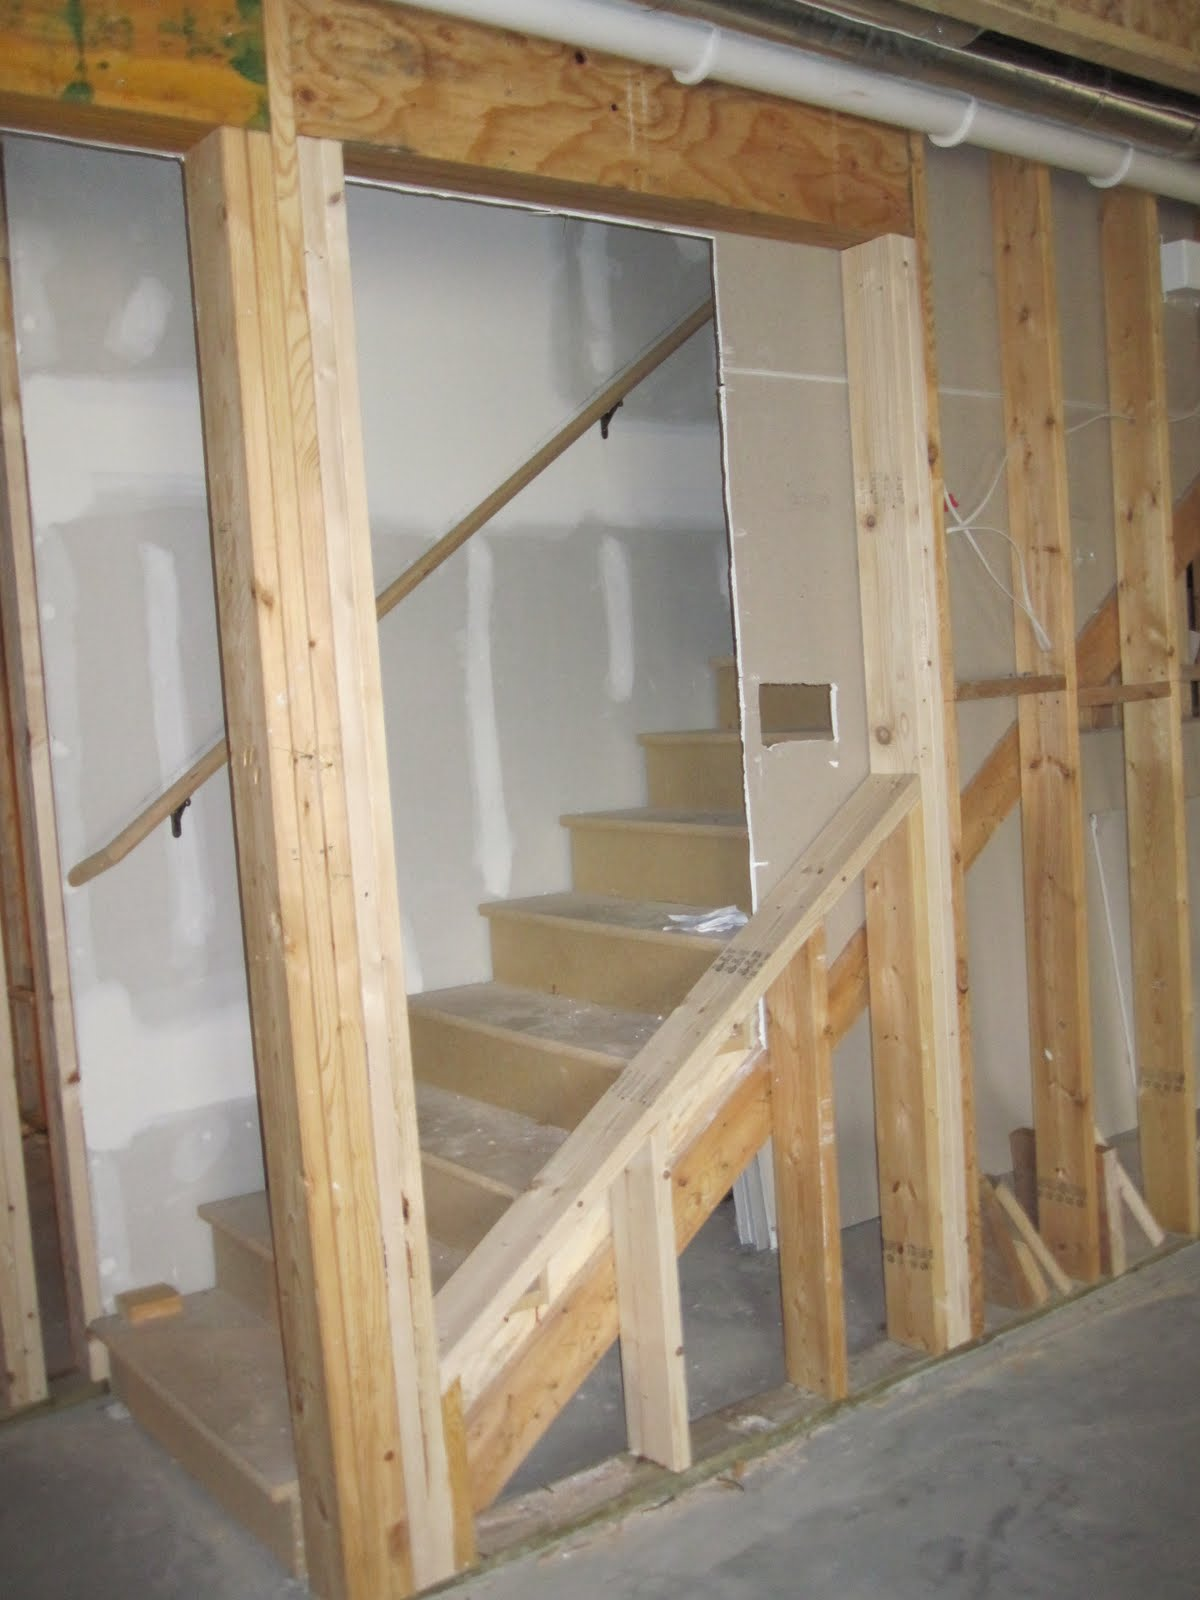 displaying 19 images for basement stair railing